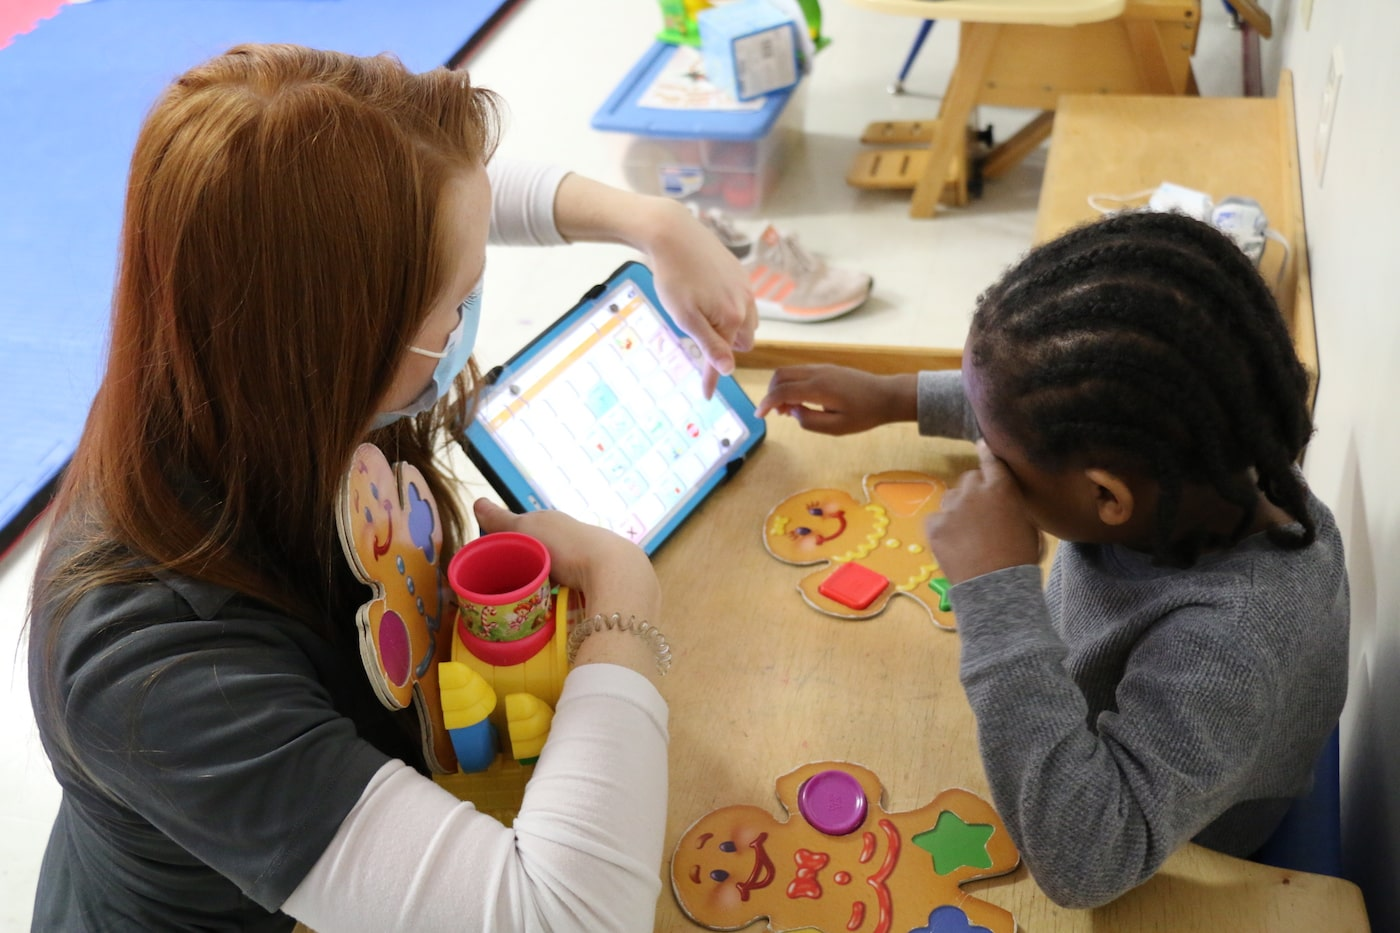 A Redwood employee working with a child on a tablet.